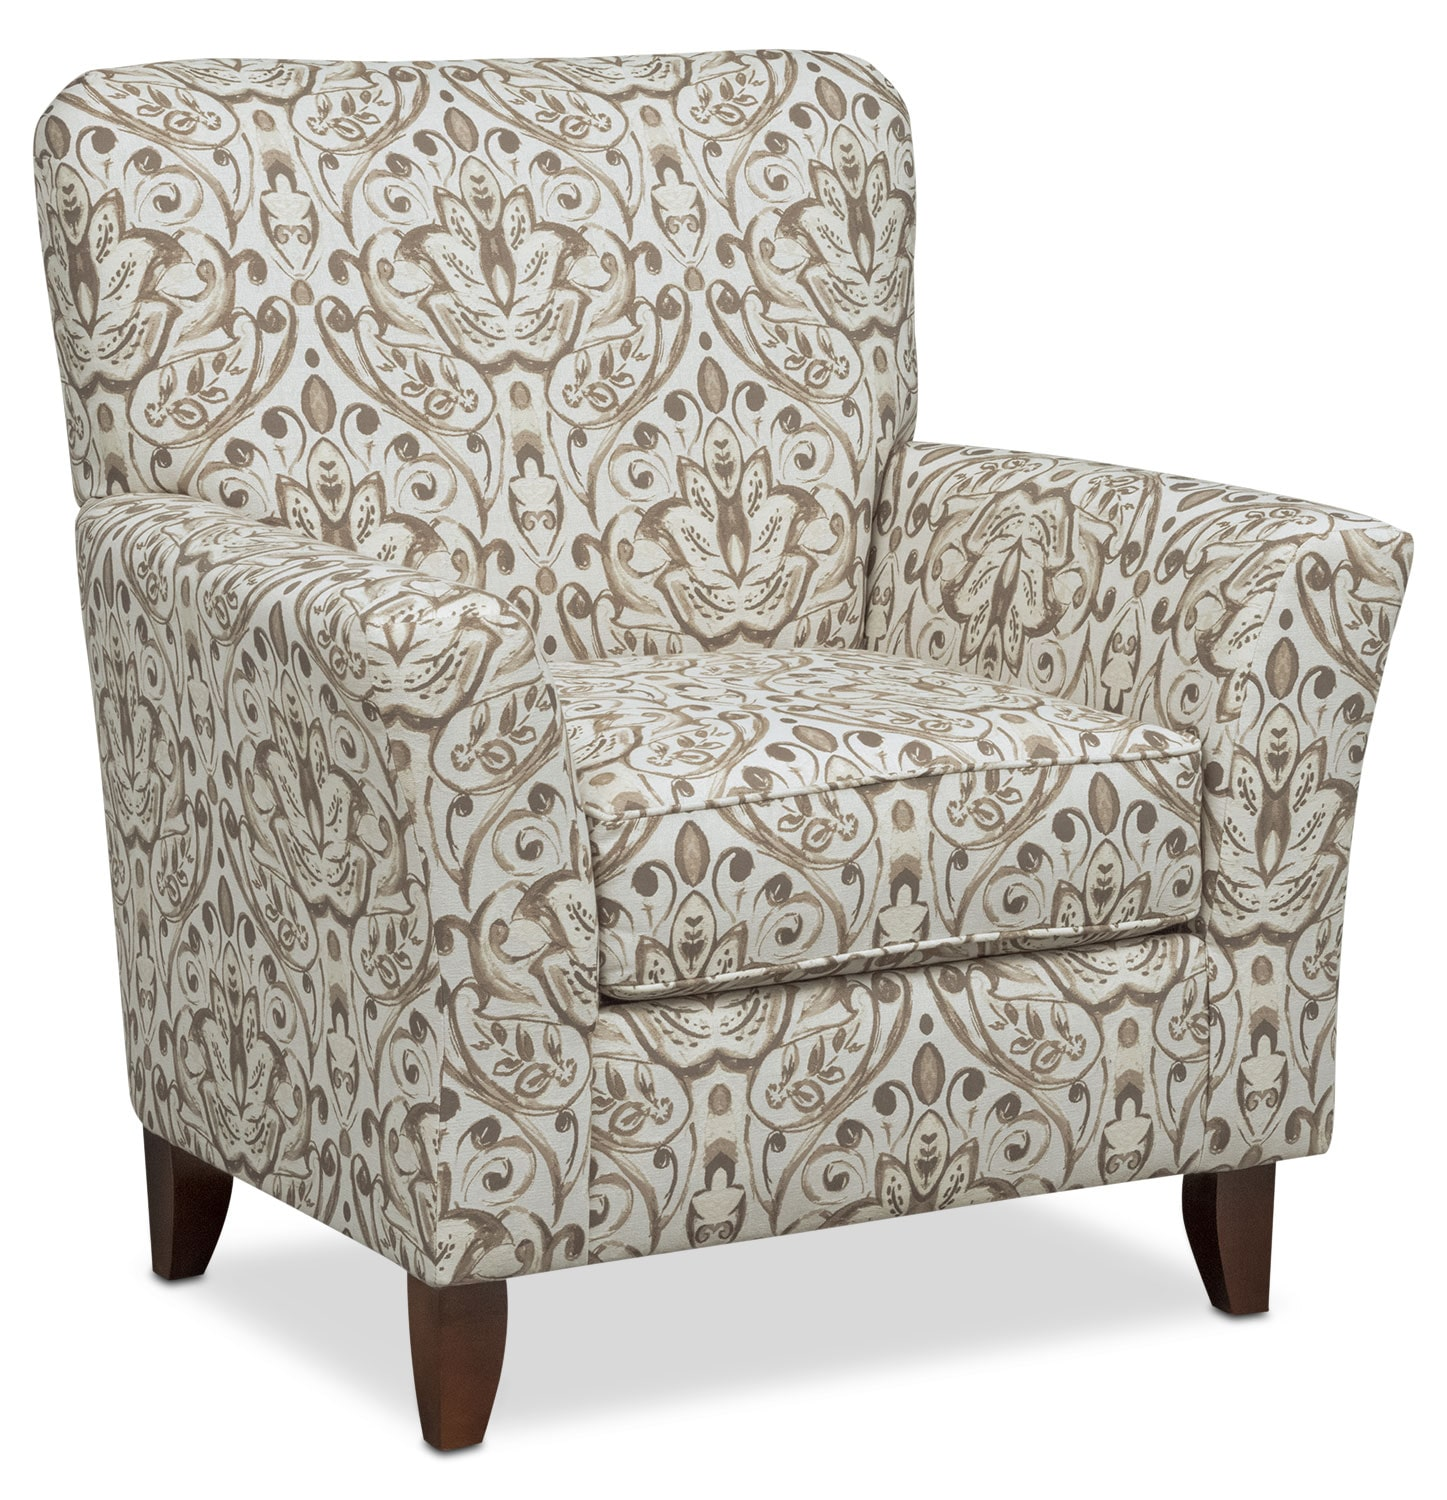 Putting Accent Chair Close To Sofa: Mckenna Queen Memory Foam Sleeper Sofa, Loveseat, And